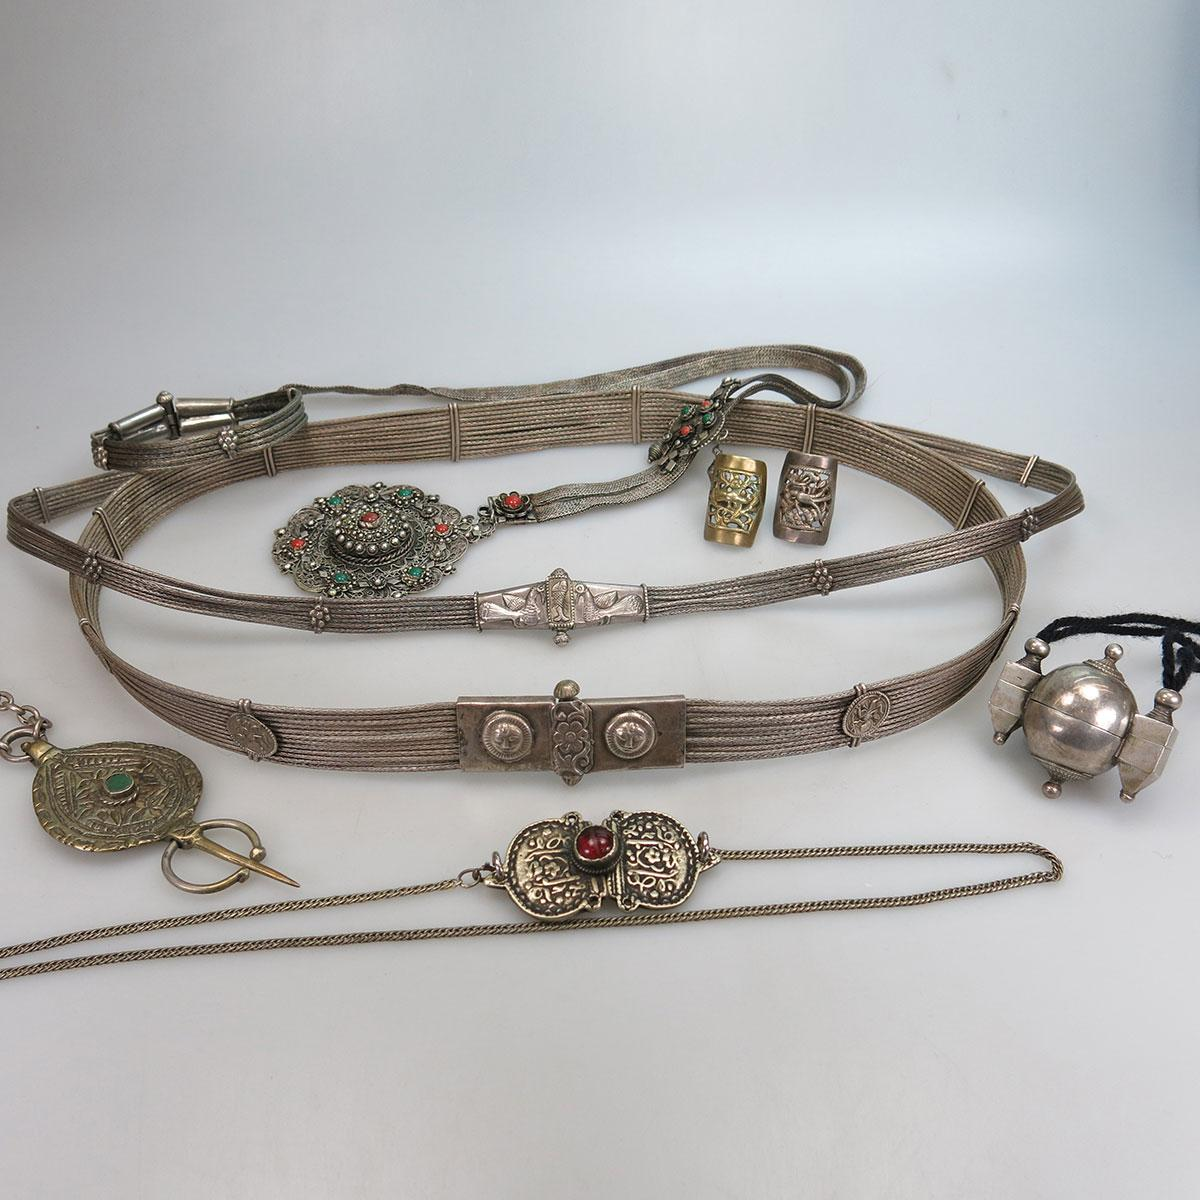 Quantity Of Eastern Silver And Silver-Plated Necklaces, Belts, Etc